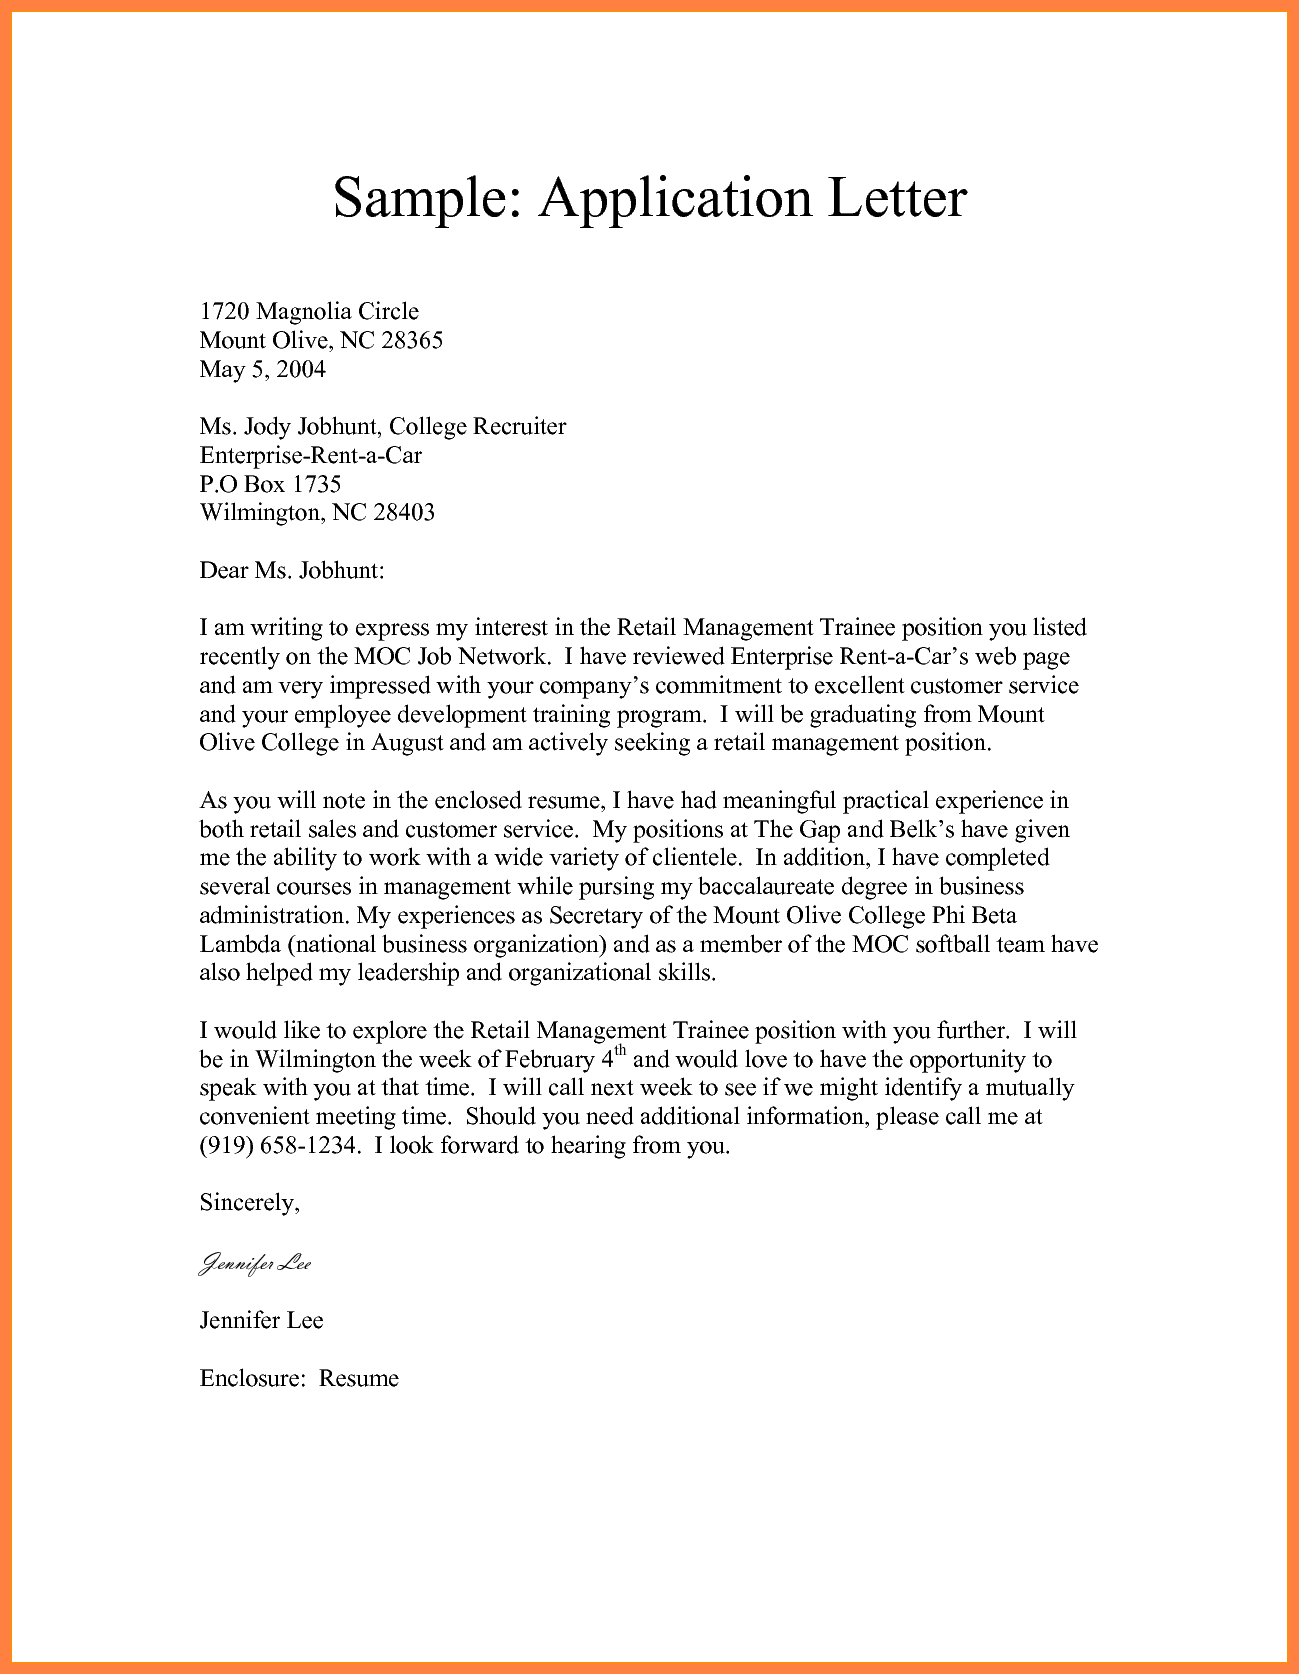 Formal application format sample letter example semi block style formal application format sample letter example semi block style spiritdancerdesigns